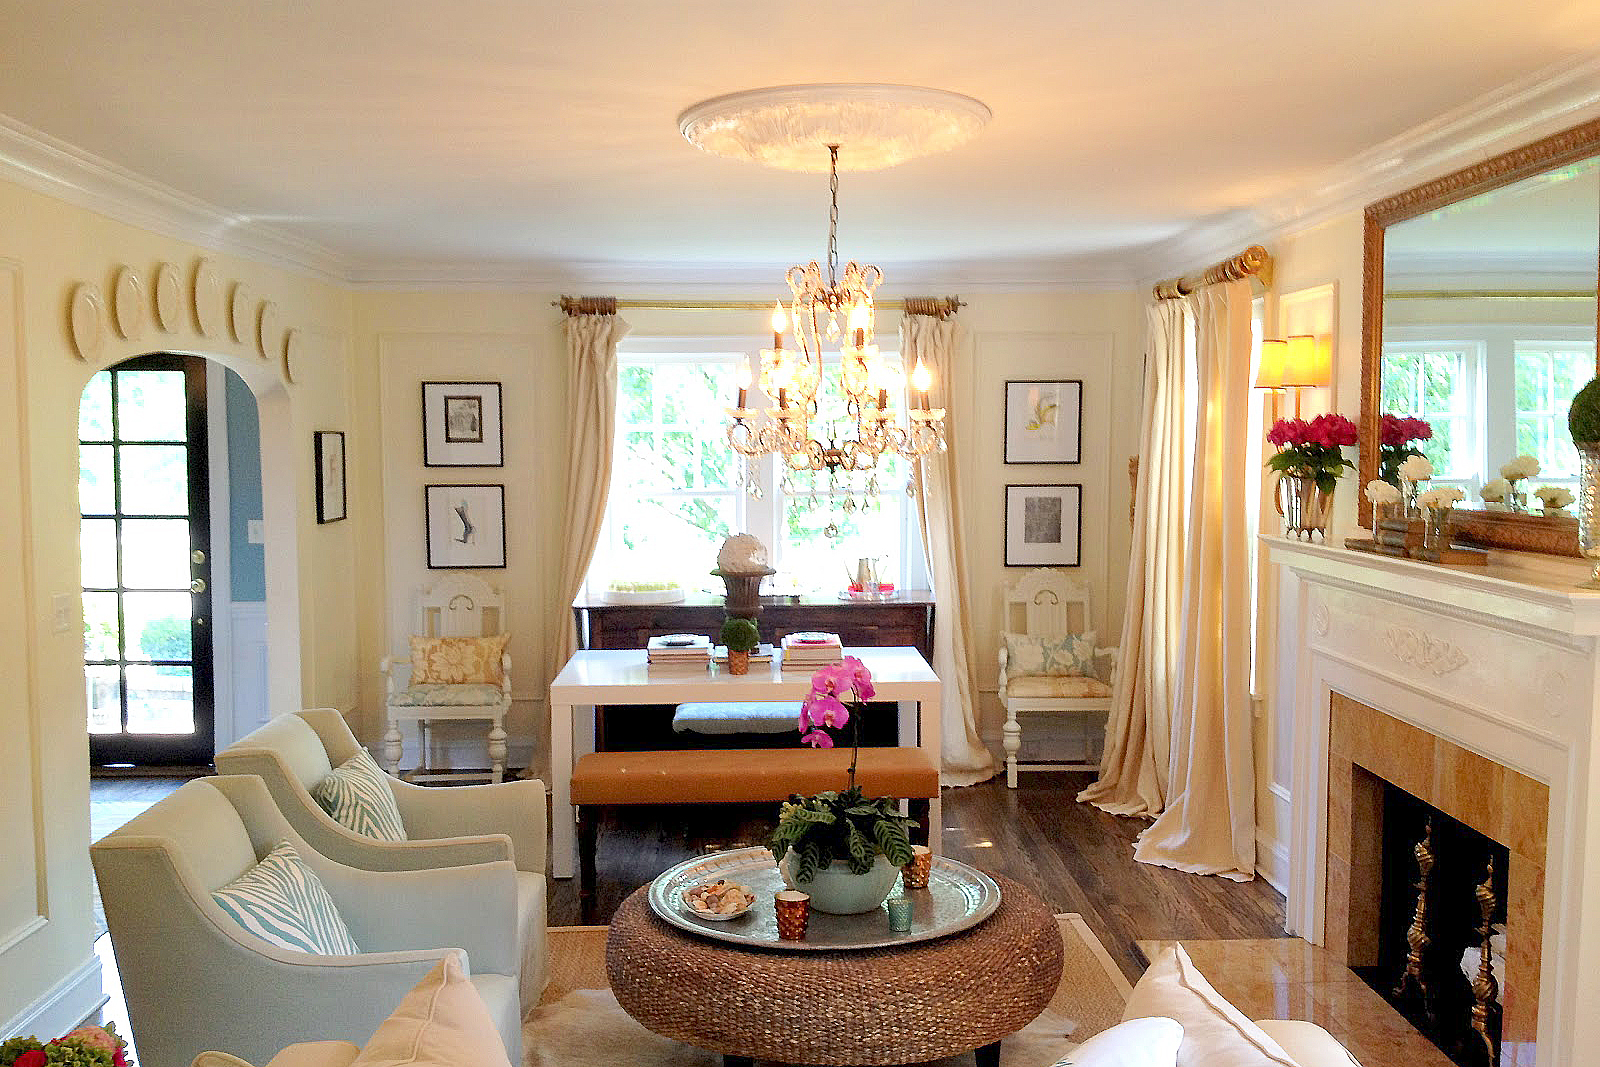 Online access of home remodeling ideas